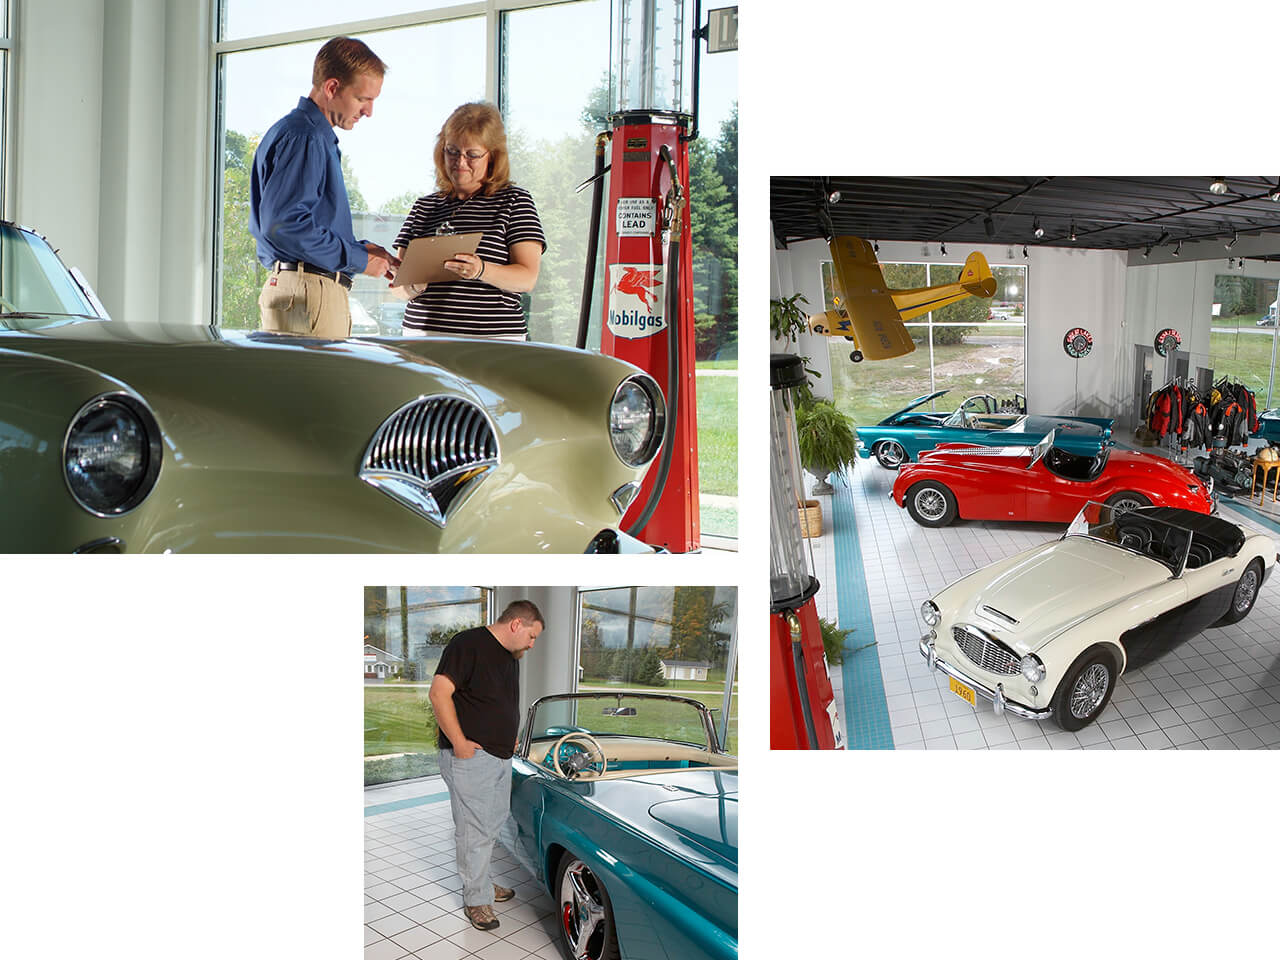 Collector vehicles on display at a dealership with a man giving a woman guidance on her purchase.